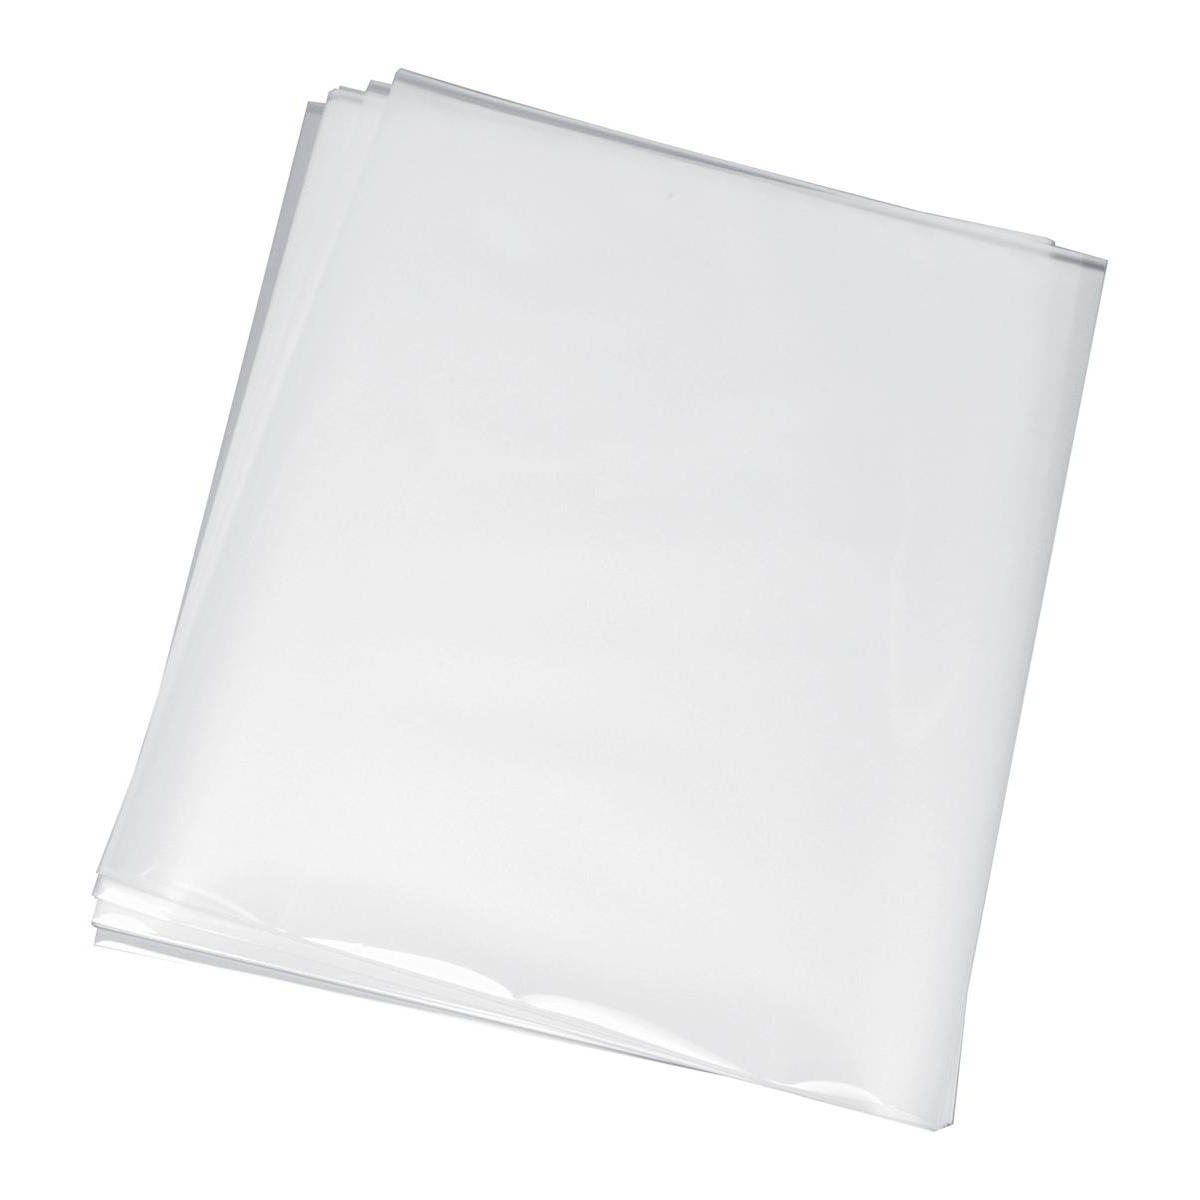 Laminator pouches GBC Laminating Pouches 150 Micron for A3 Ref 3200745 [Pack 100]